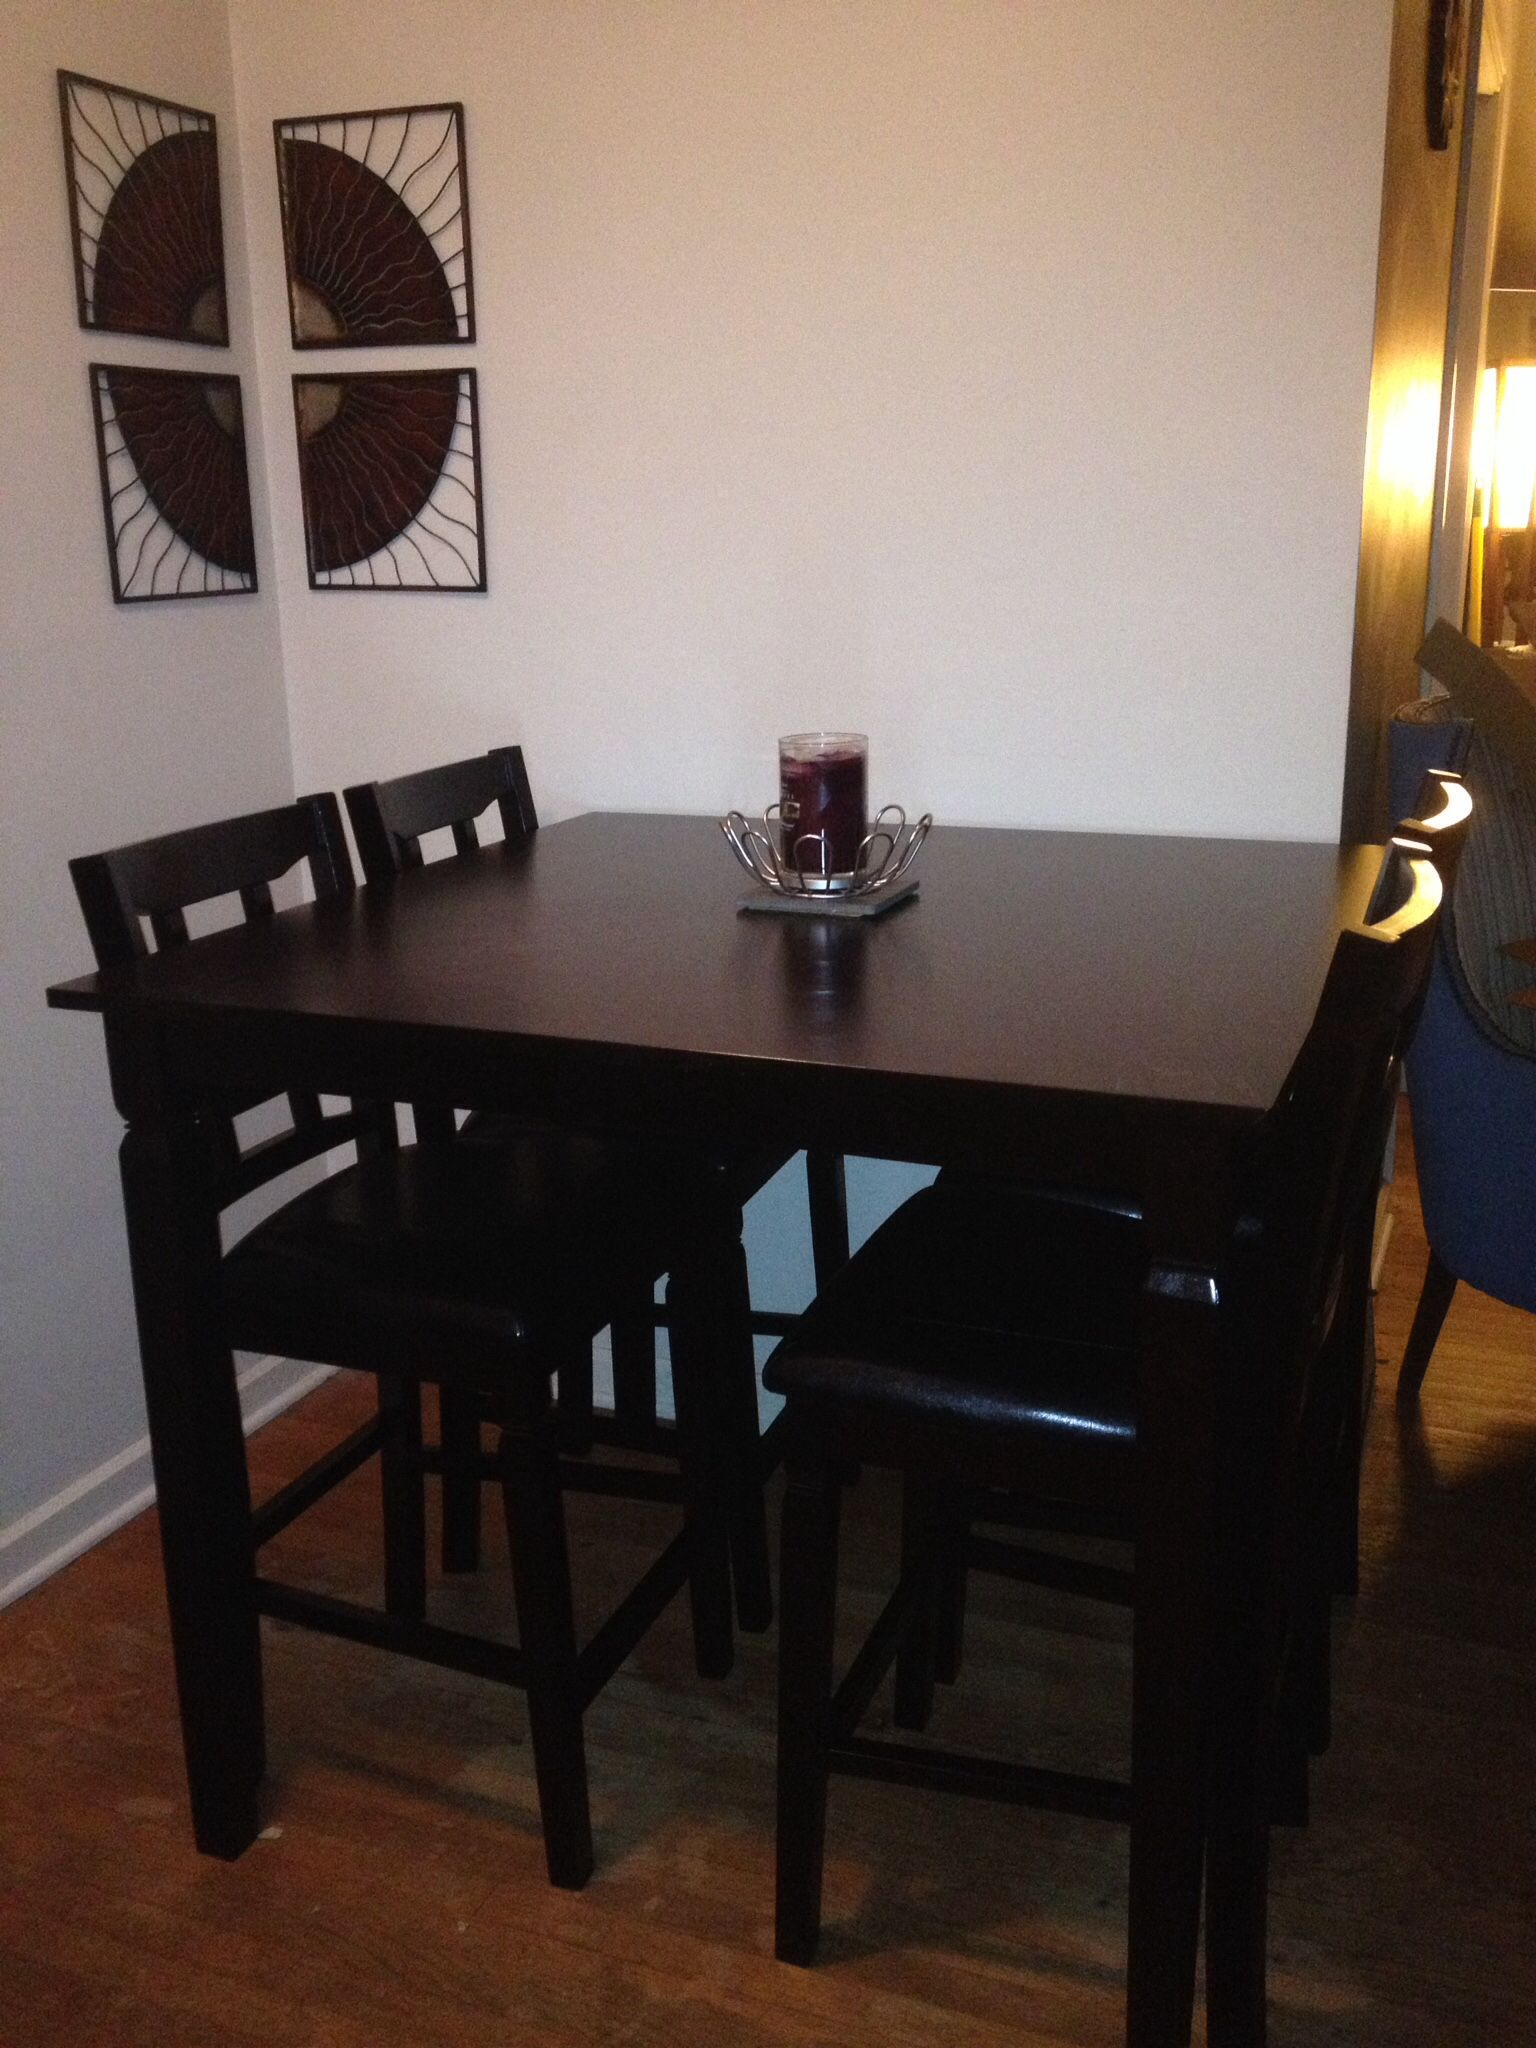 Big Lots Dining Chairs Espresso Pub Table And Chairs From Big Lots Works Great In Our